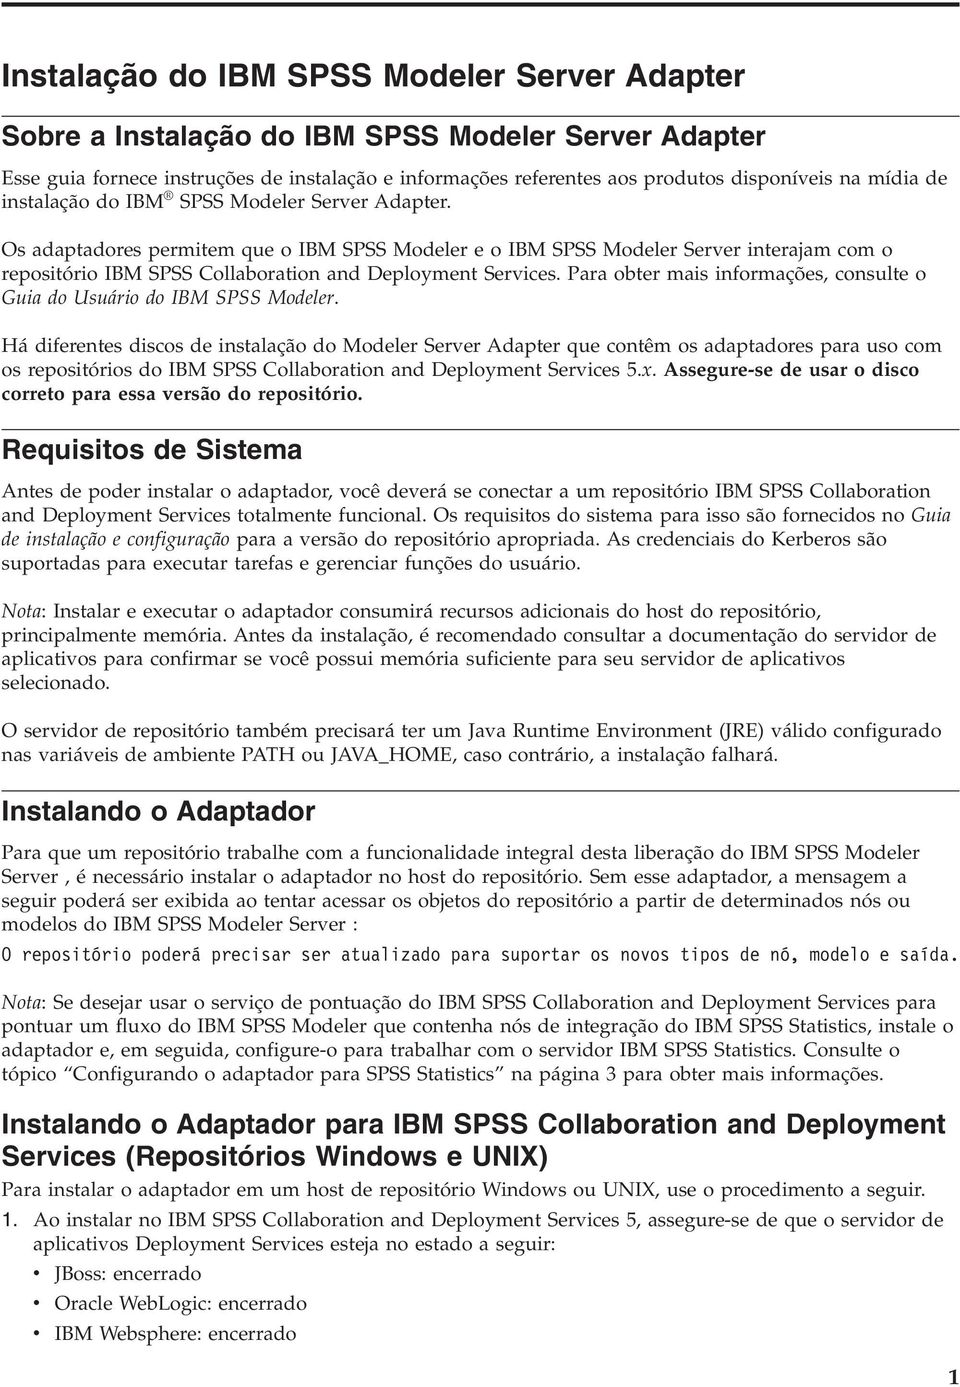 Os adaptadores permitem que o IBM SPSS Modeler e o IBM SPSS Modeler Server interajam com o repositório IBM SPSS Collaboration and Deployment Services.